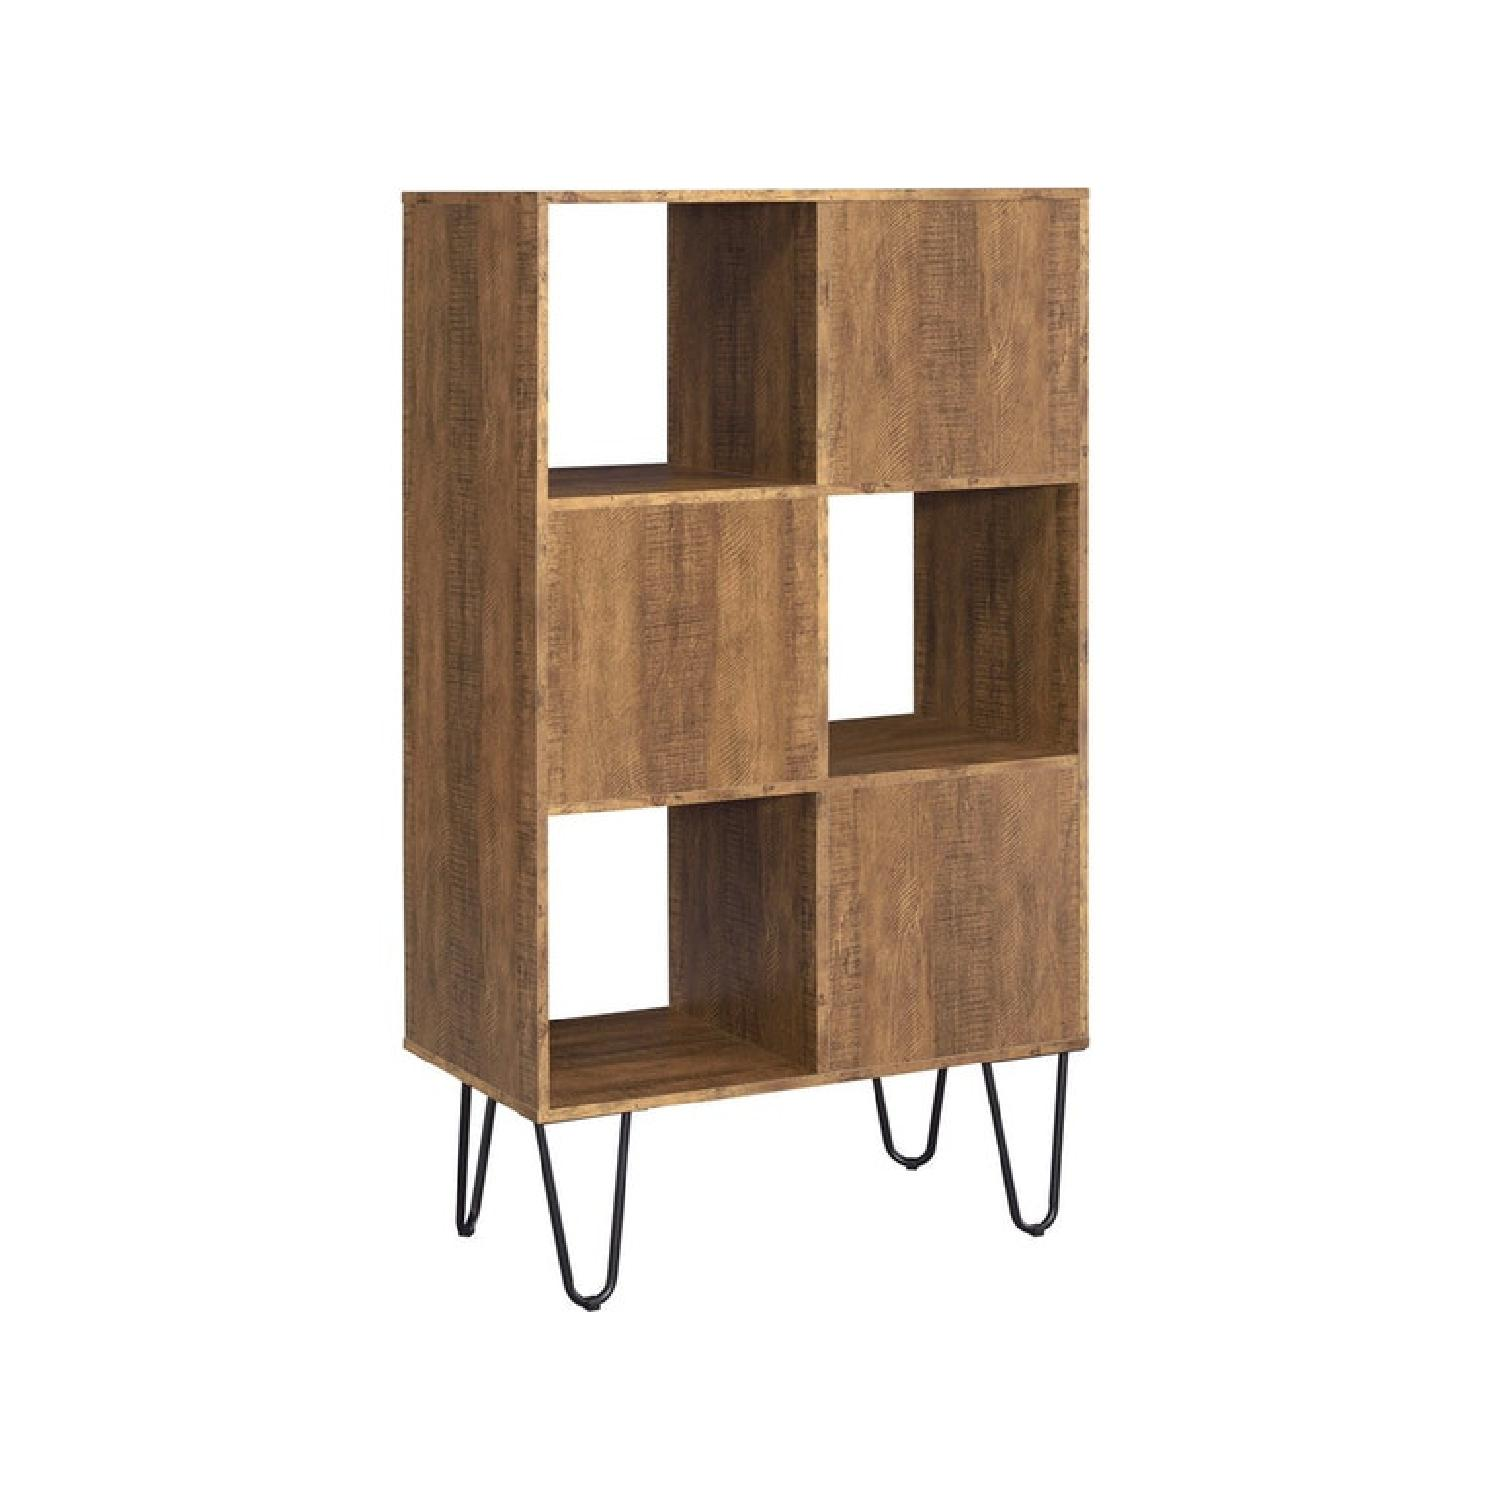 Rustic Amber Bookcase w/ Hair Pin Legs - image-2